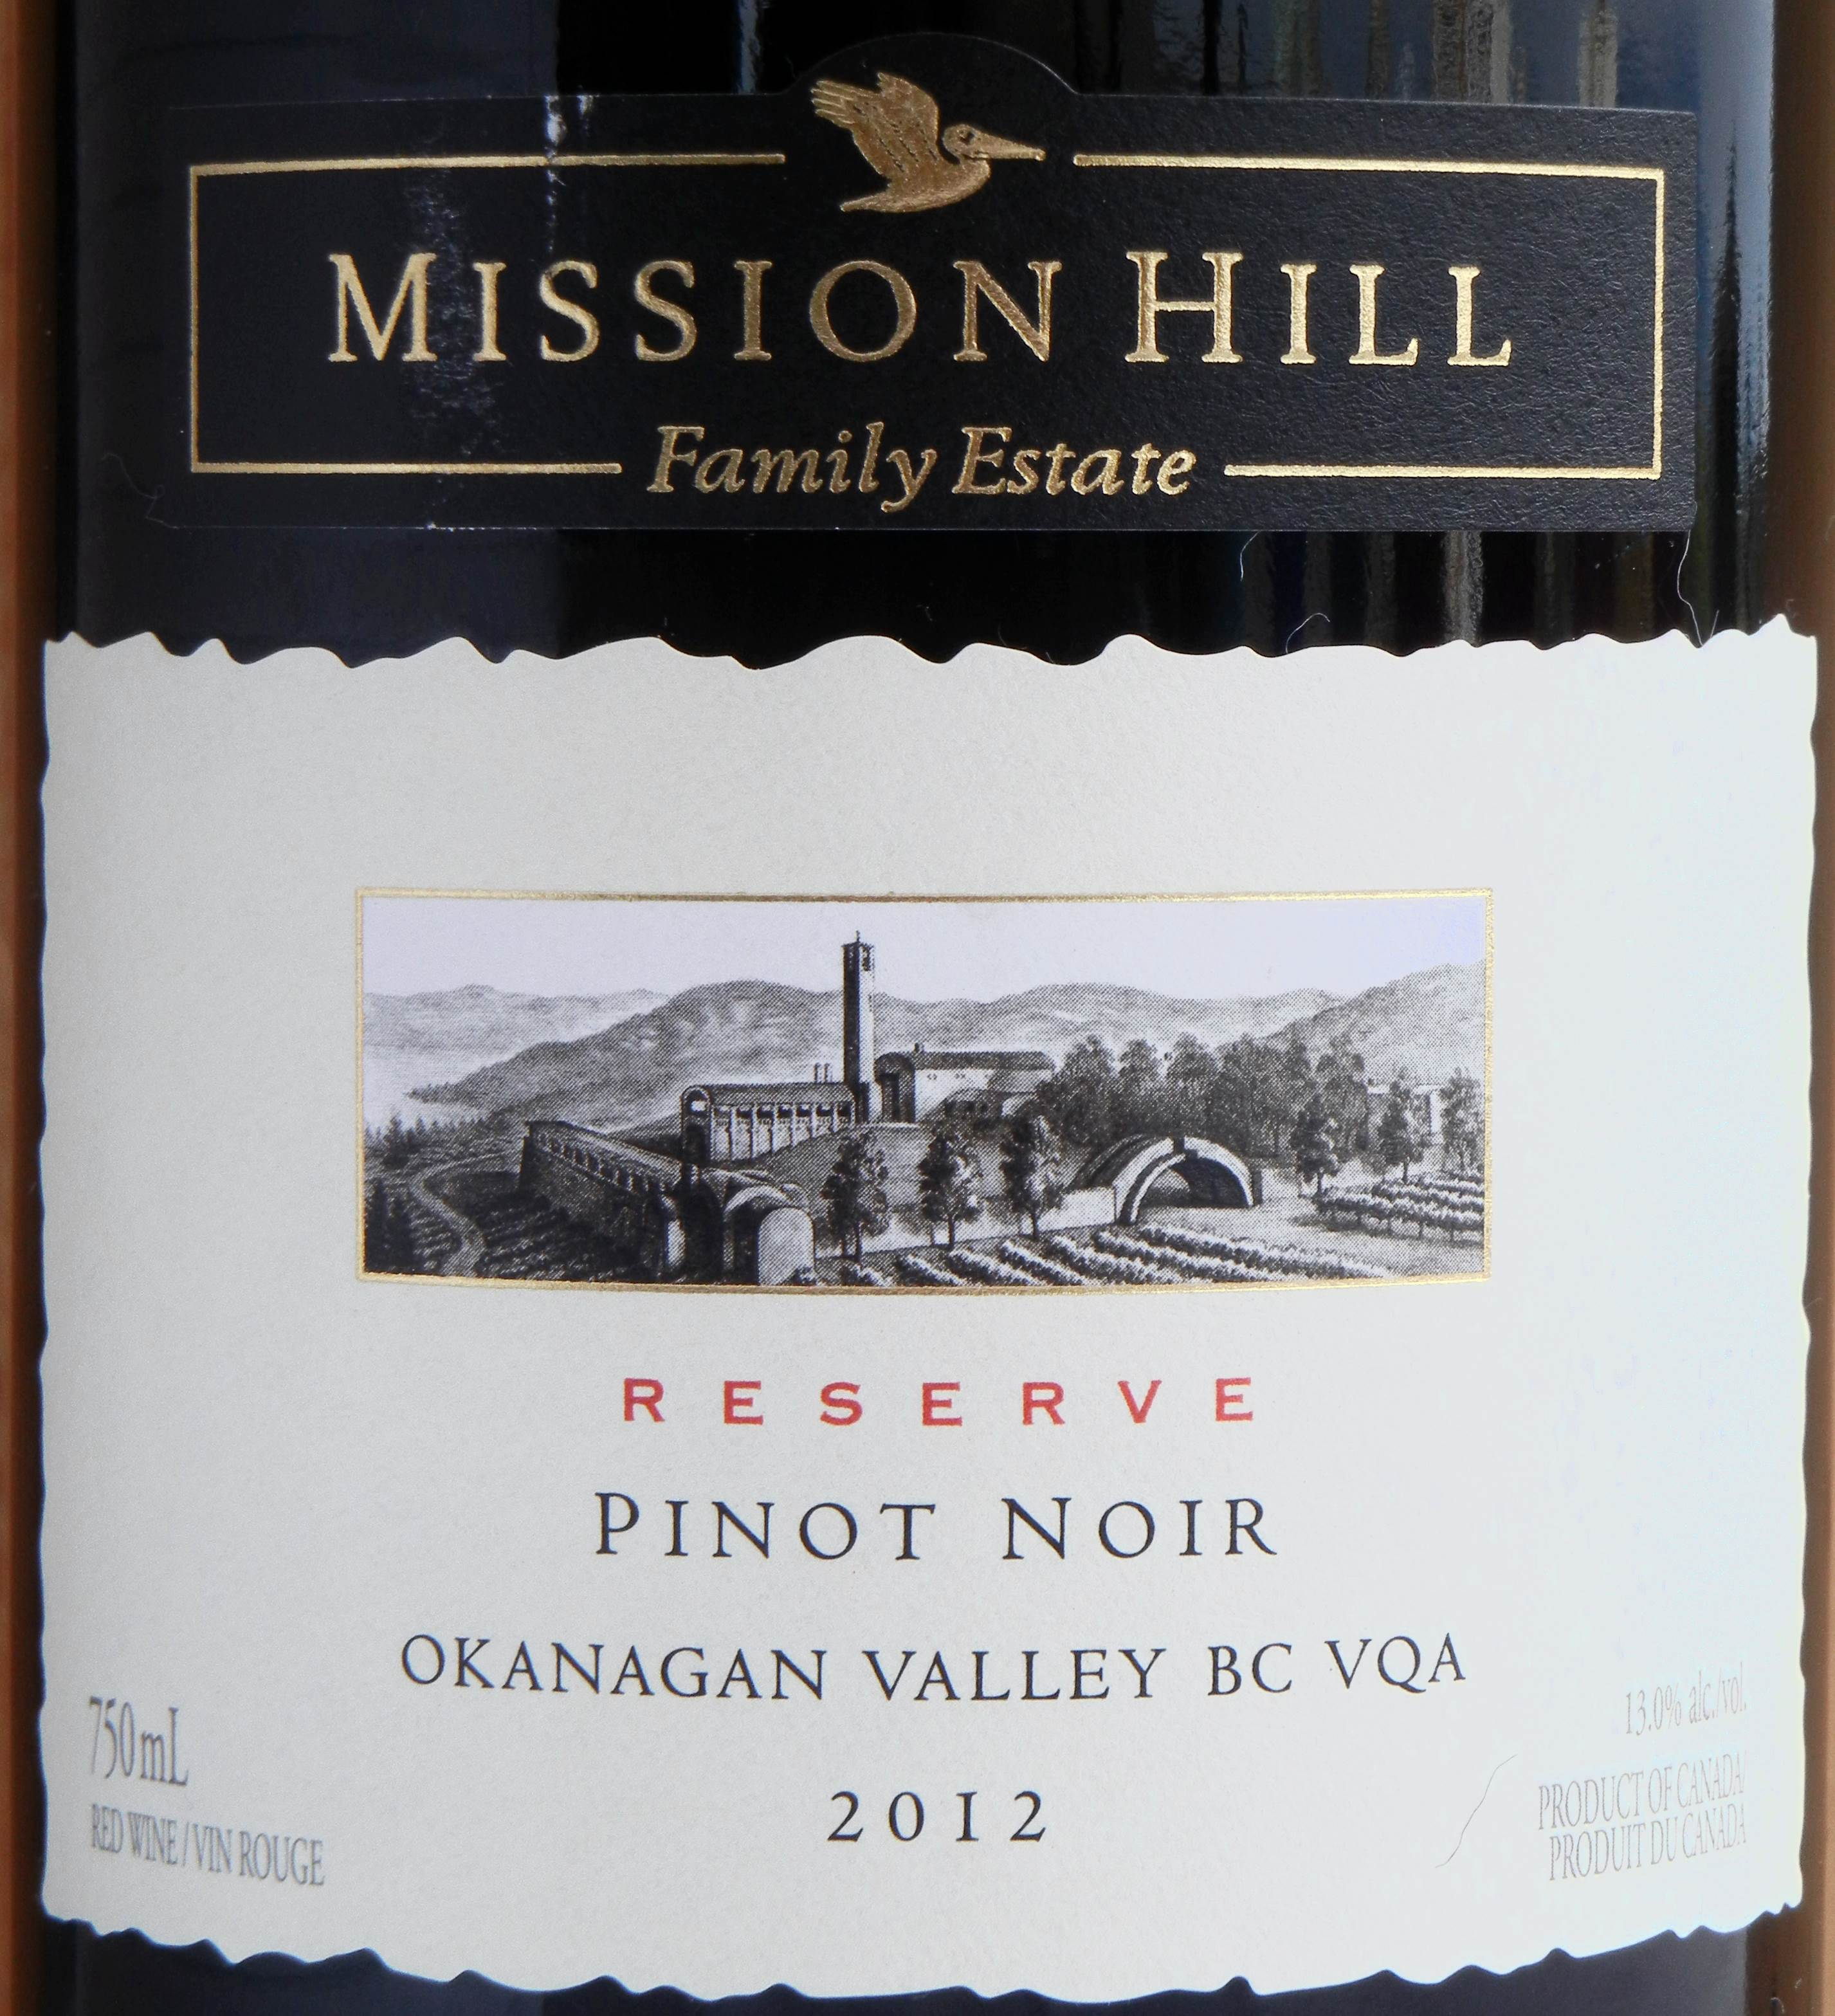 Mission Hill Reserve Pinot Noir 2012 Label - BC Pinot Noir Tasting Review 19